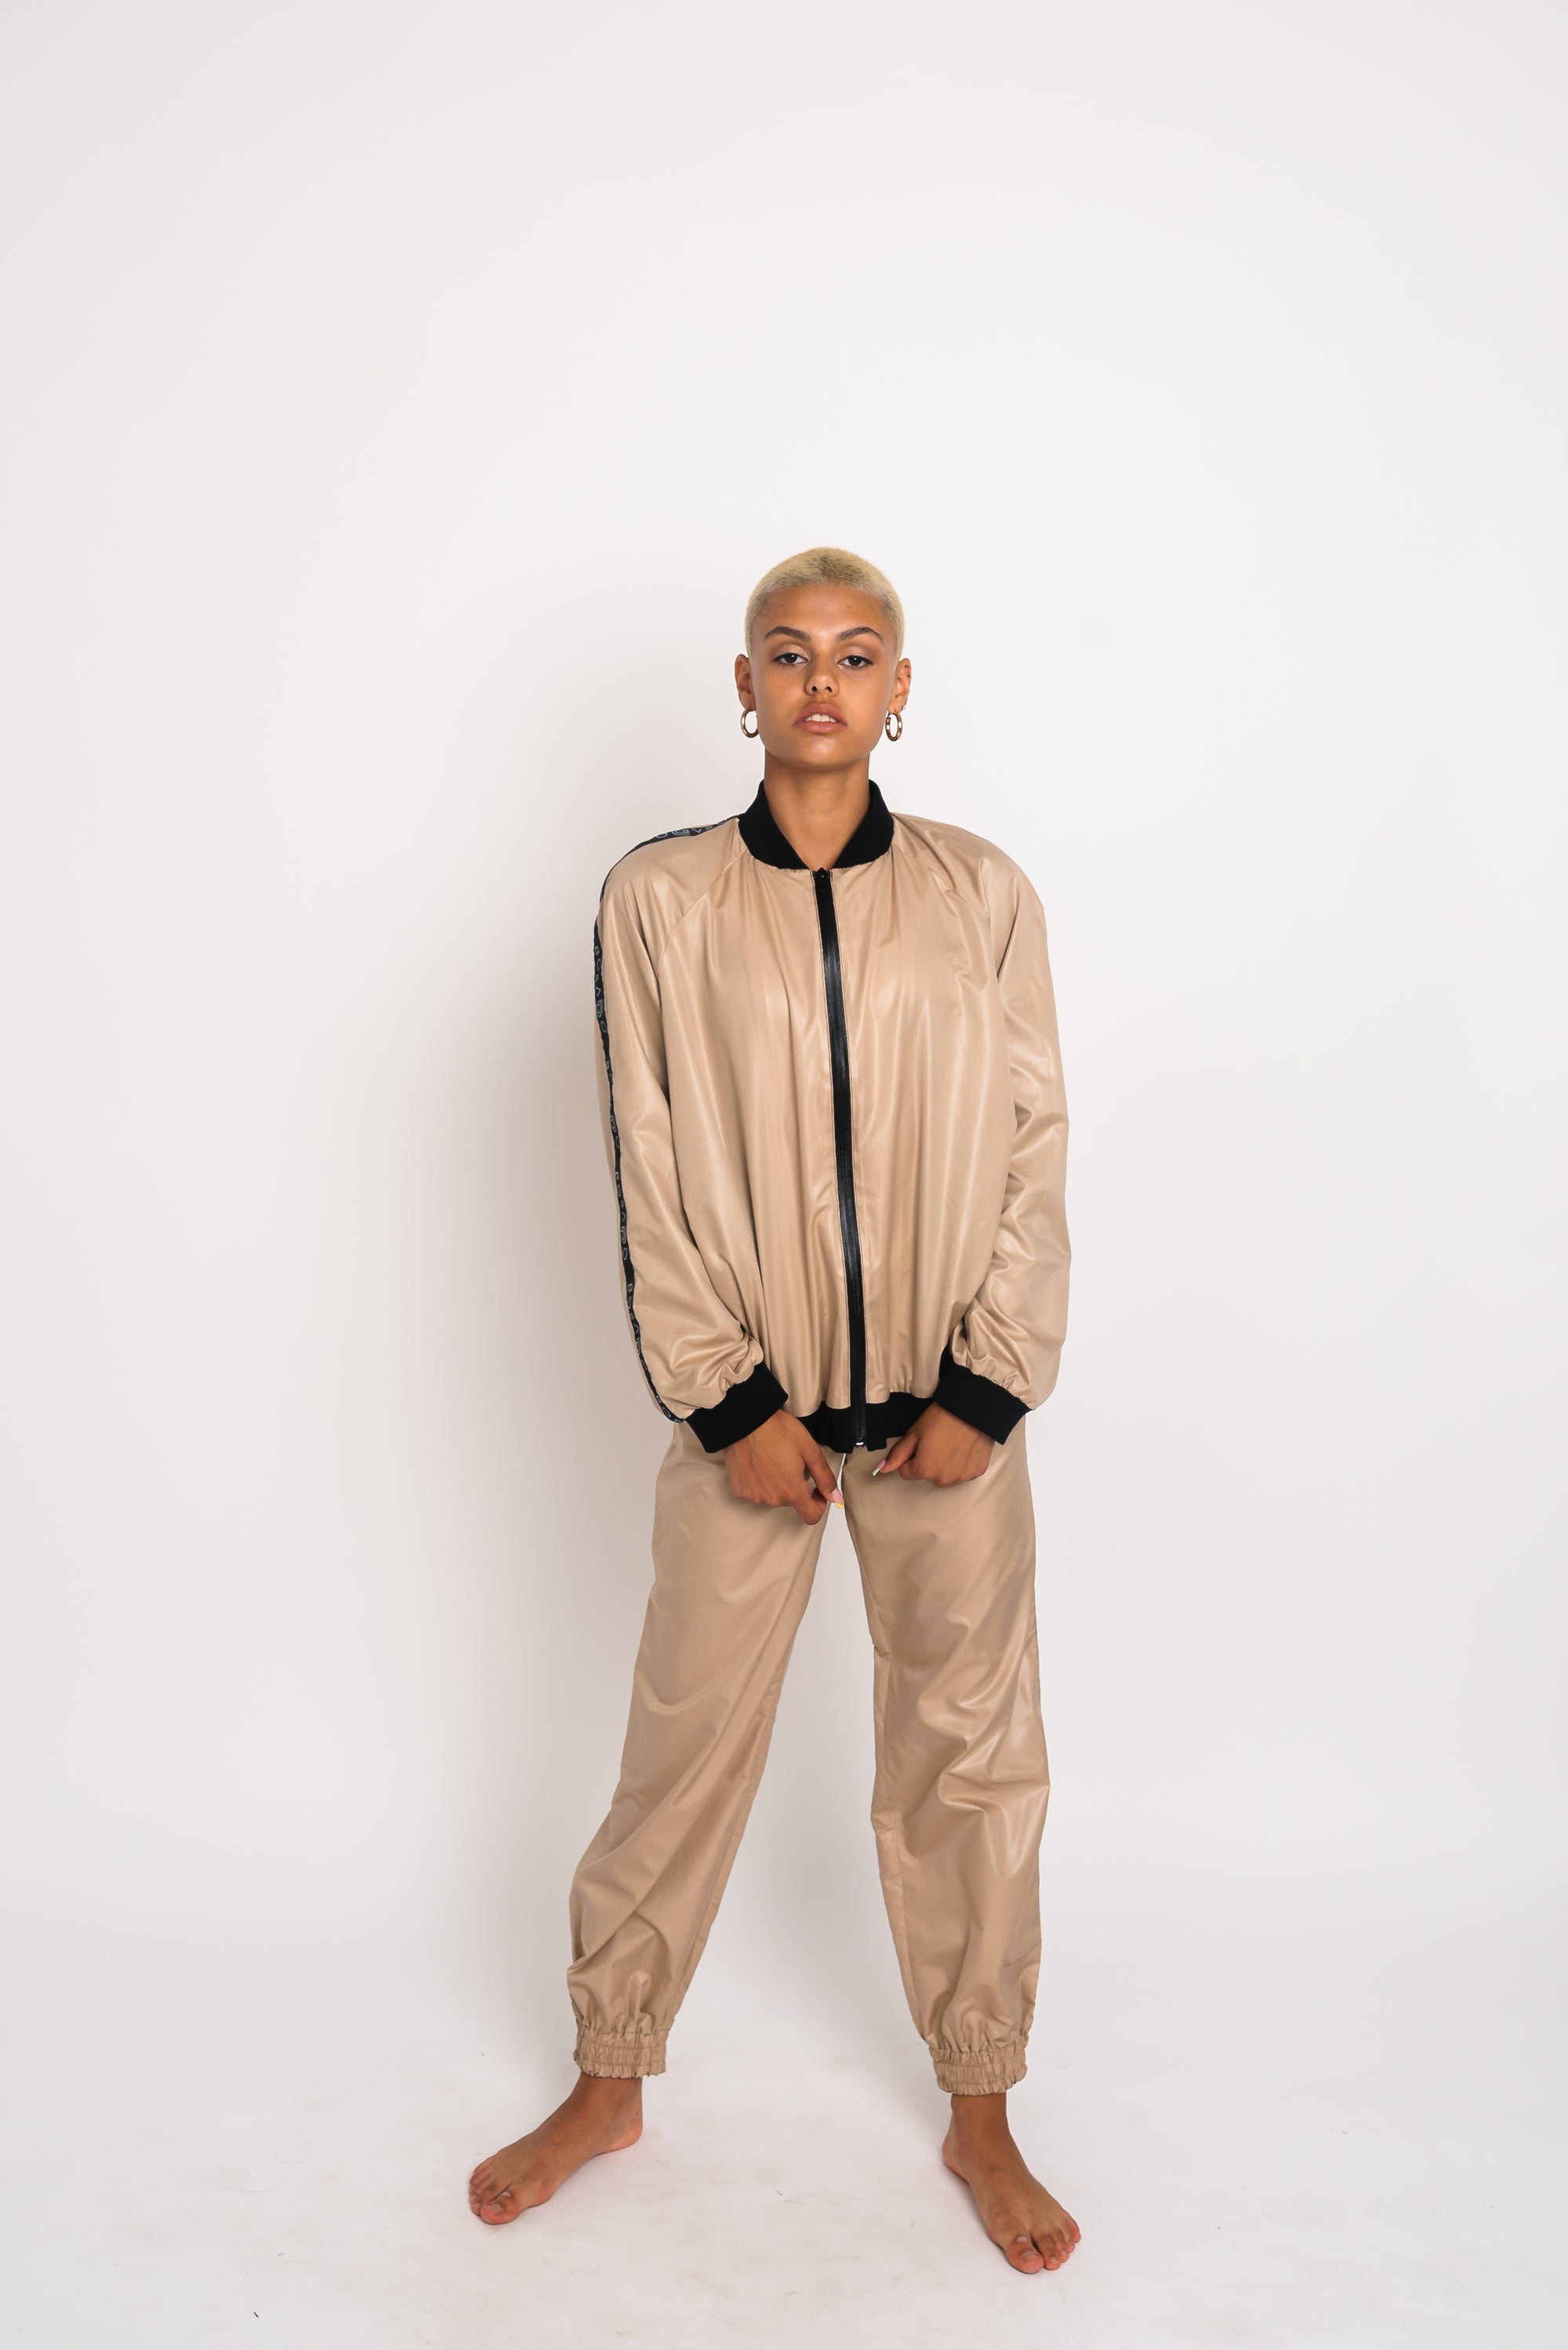 URBAN SWAN COLLECTION | Heat-retaining nude color jacket